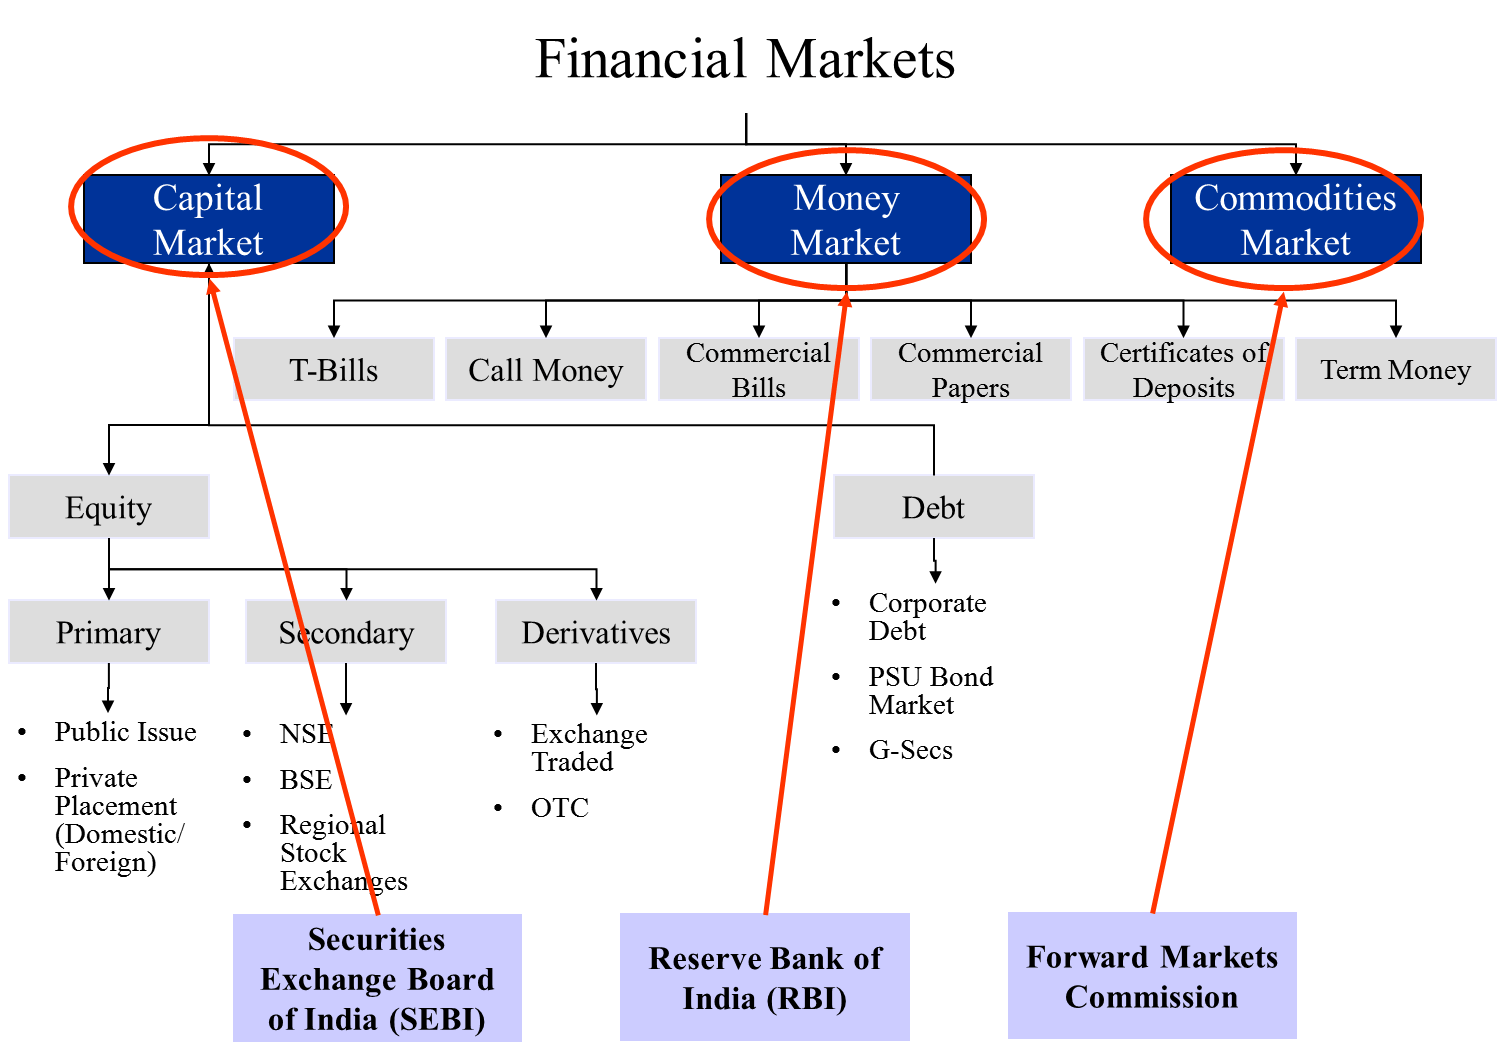 Investment Banking and Capital Markets